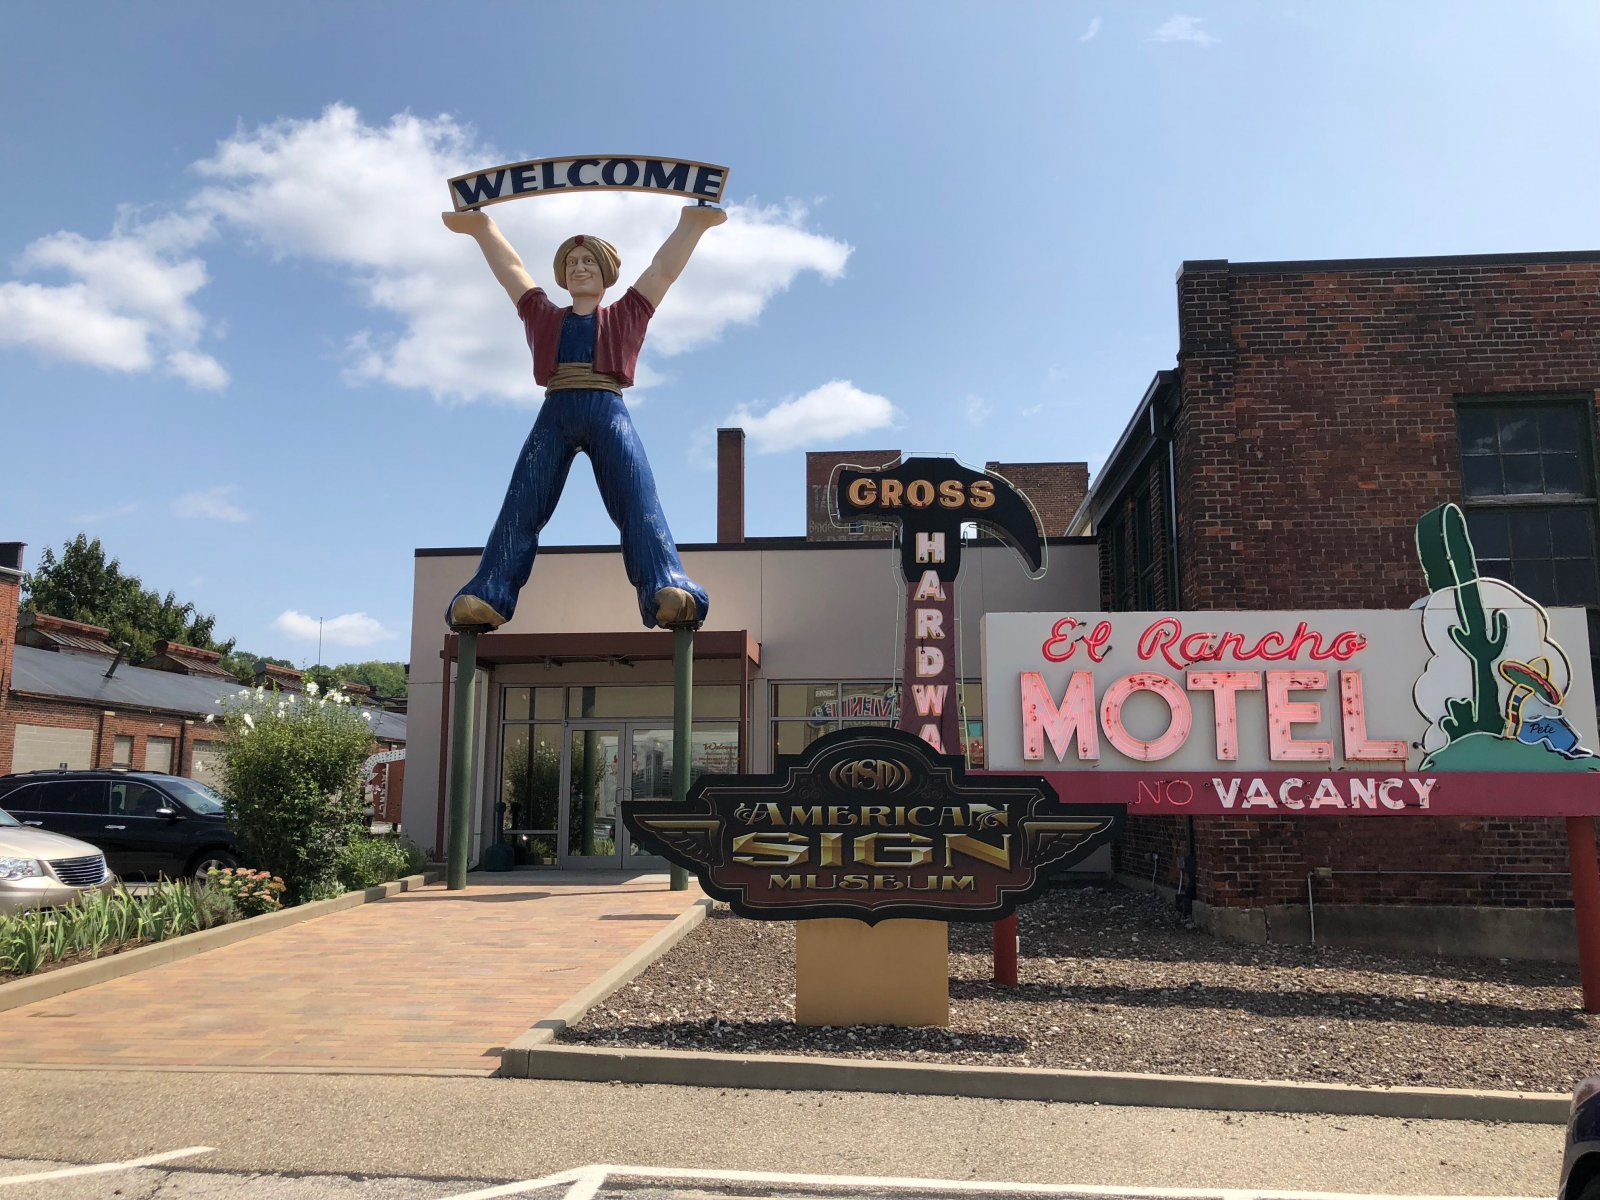 American Sign Museum Entrance